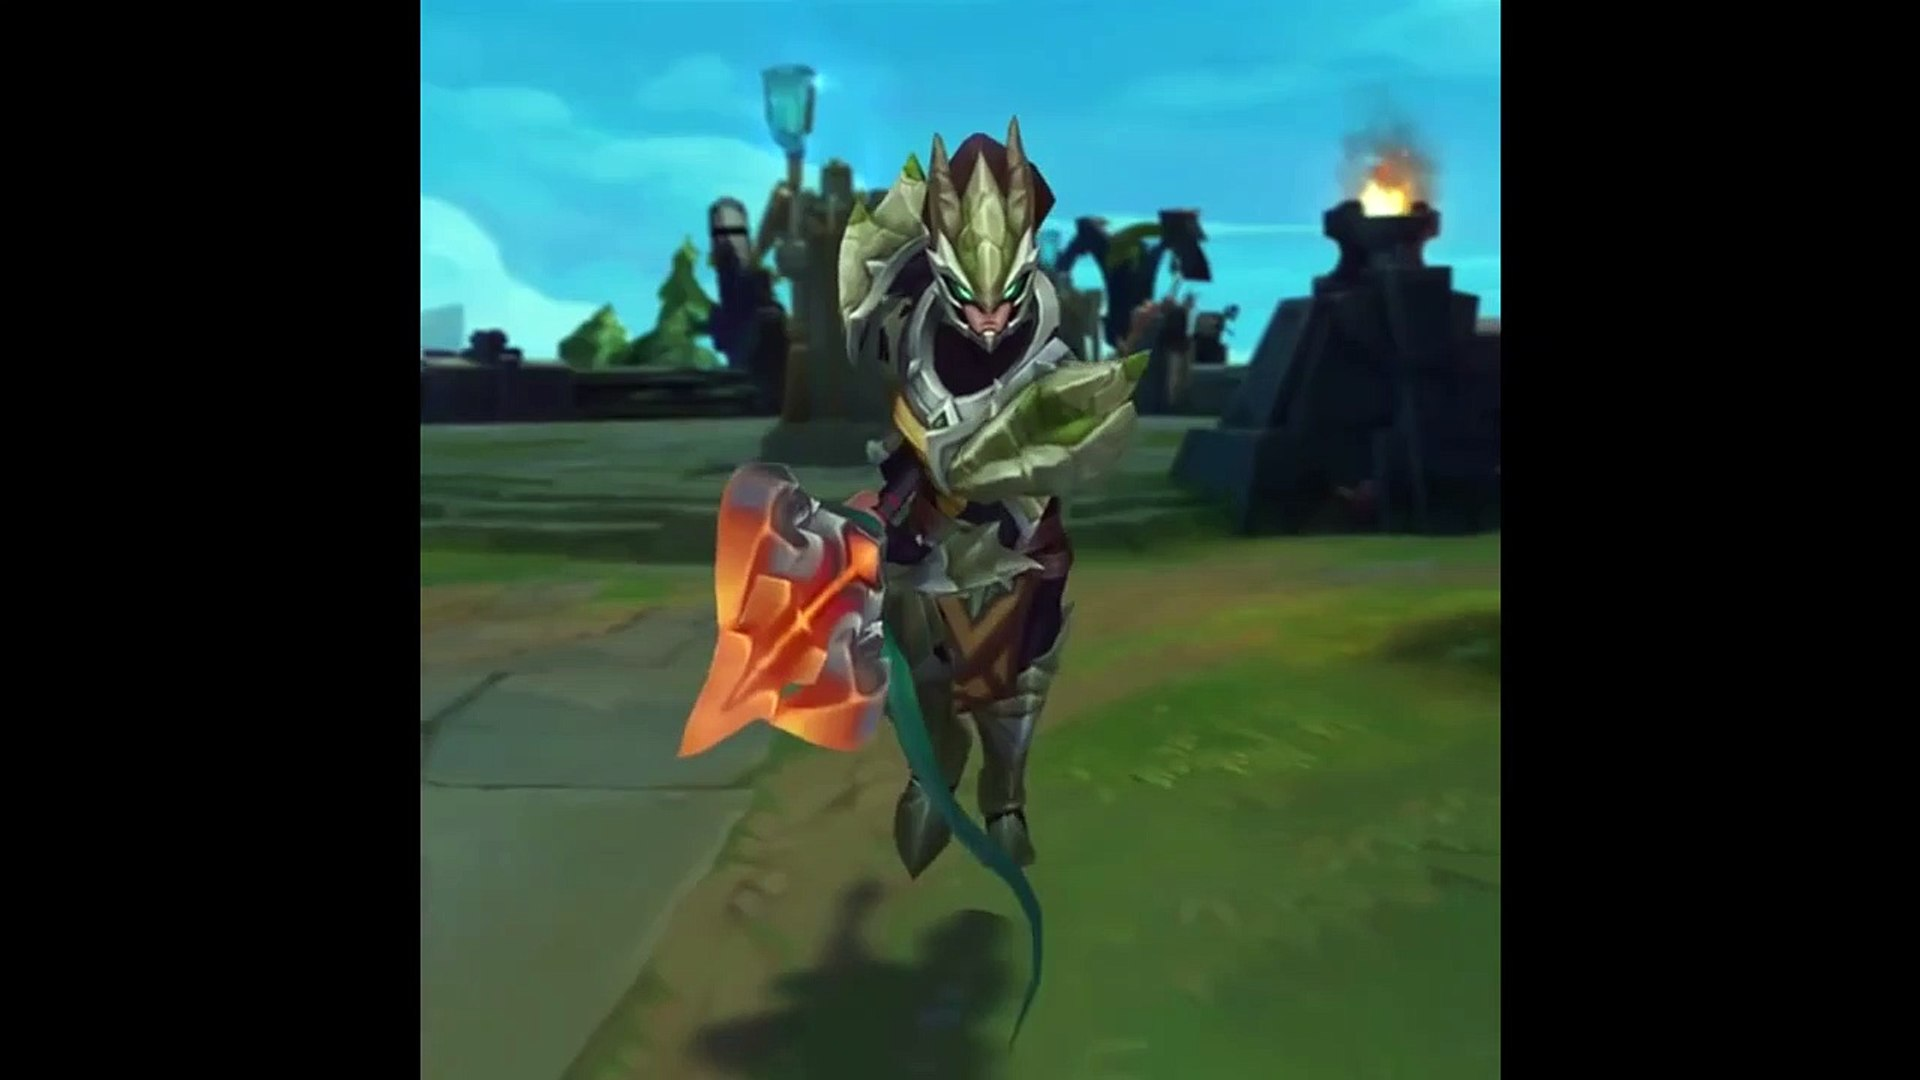 Dragonslayer Xin Zhao and Drgon Sorceress Zyra Skin Preview _ Teaser - League of Legends-5